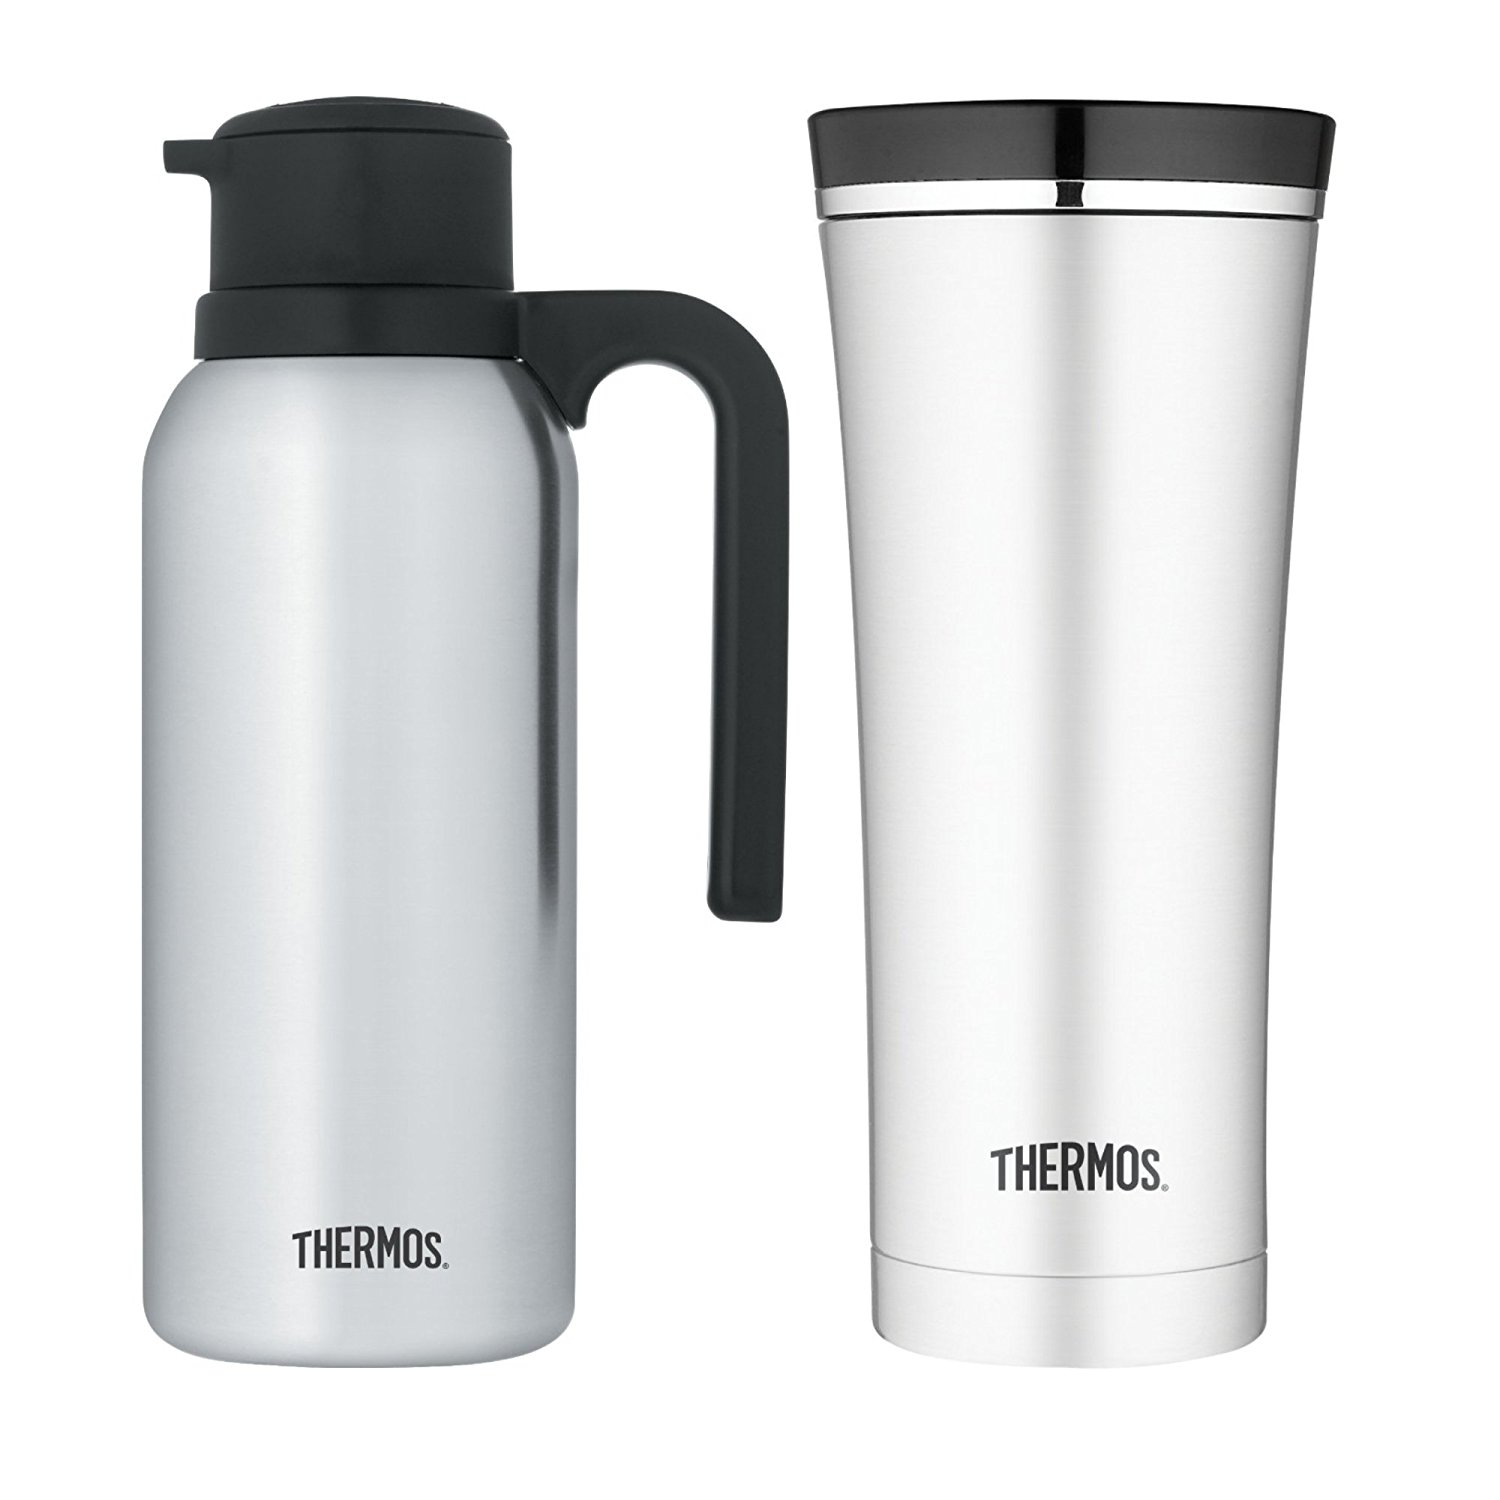 c90f98c555b Get Quotations · Thermos Stainless Steel Vacuum Insulated 32oz Carafe w/ Travel Tumbler Bundle